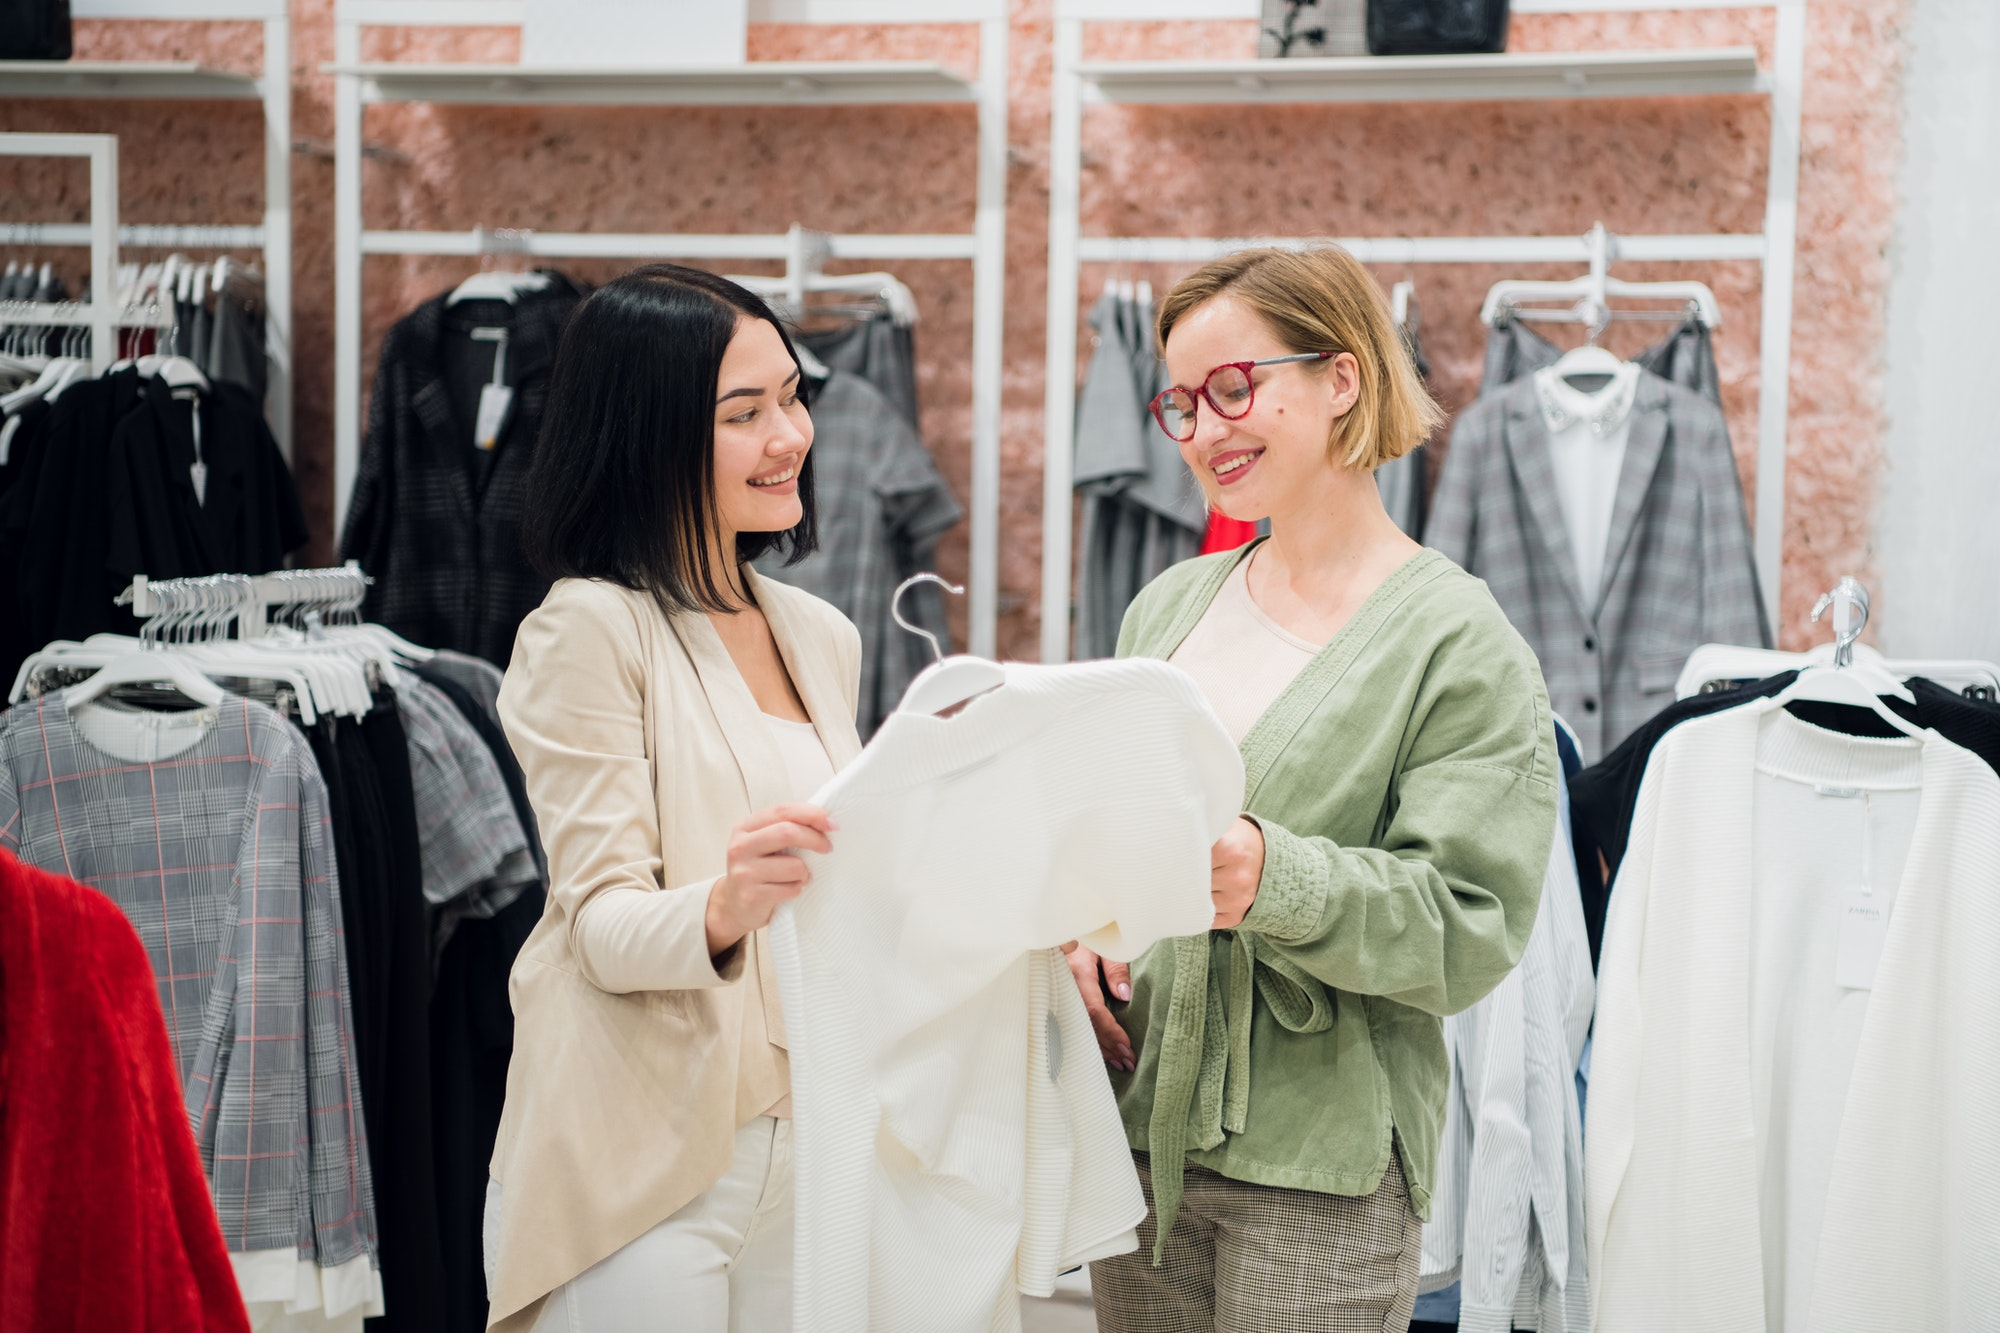 Fashion consultant showing clothes to the client